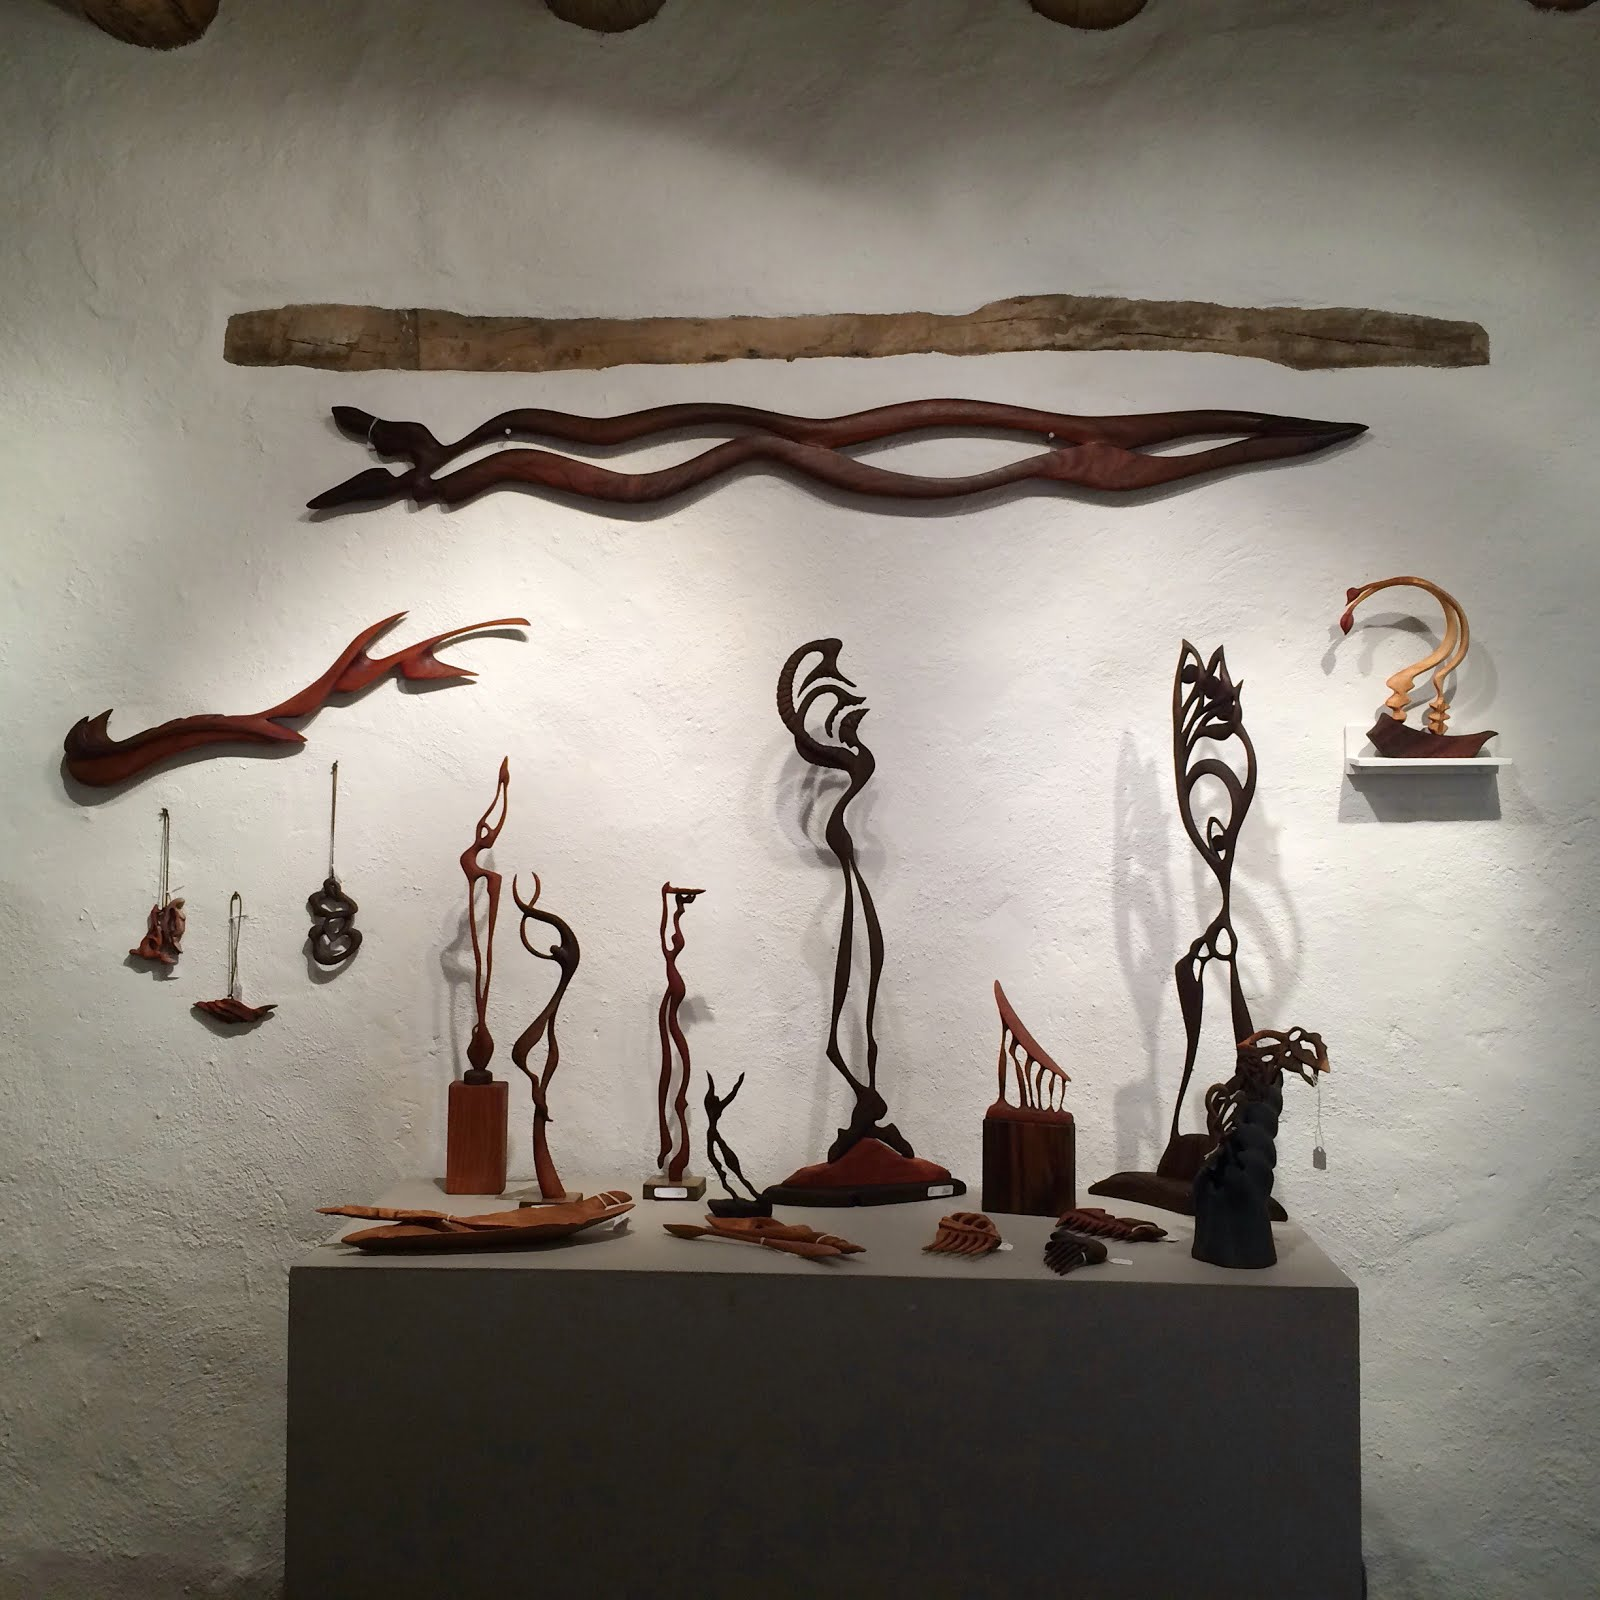 The Unsettled Gallery in Las Cruces